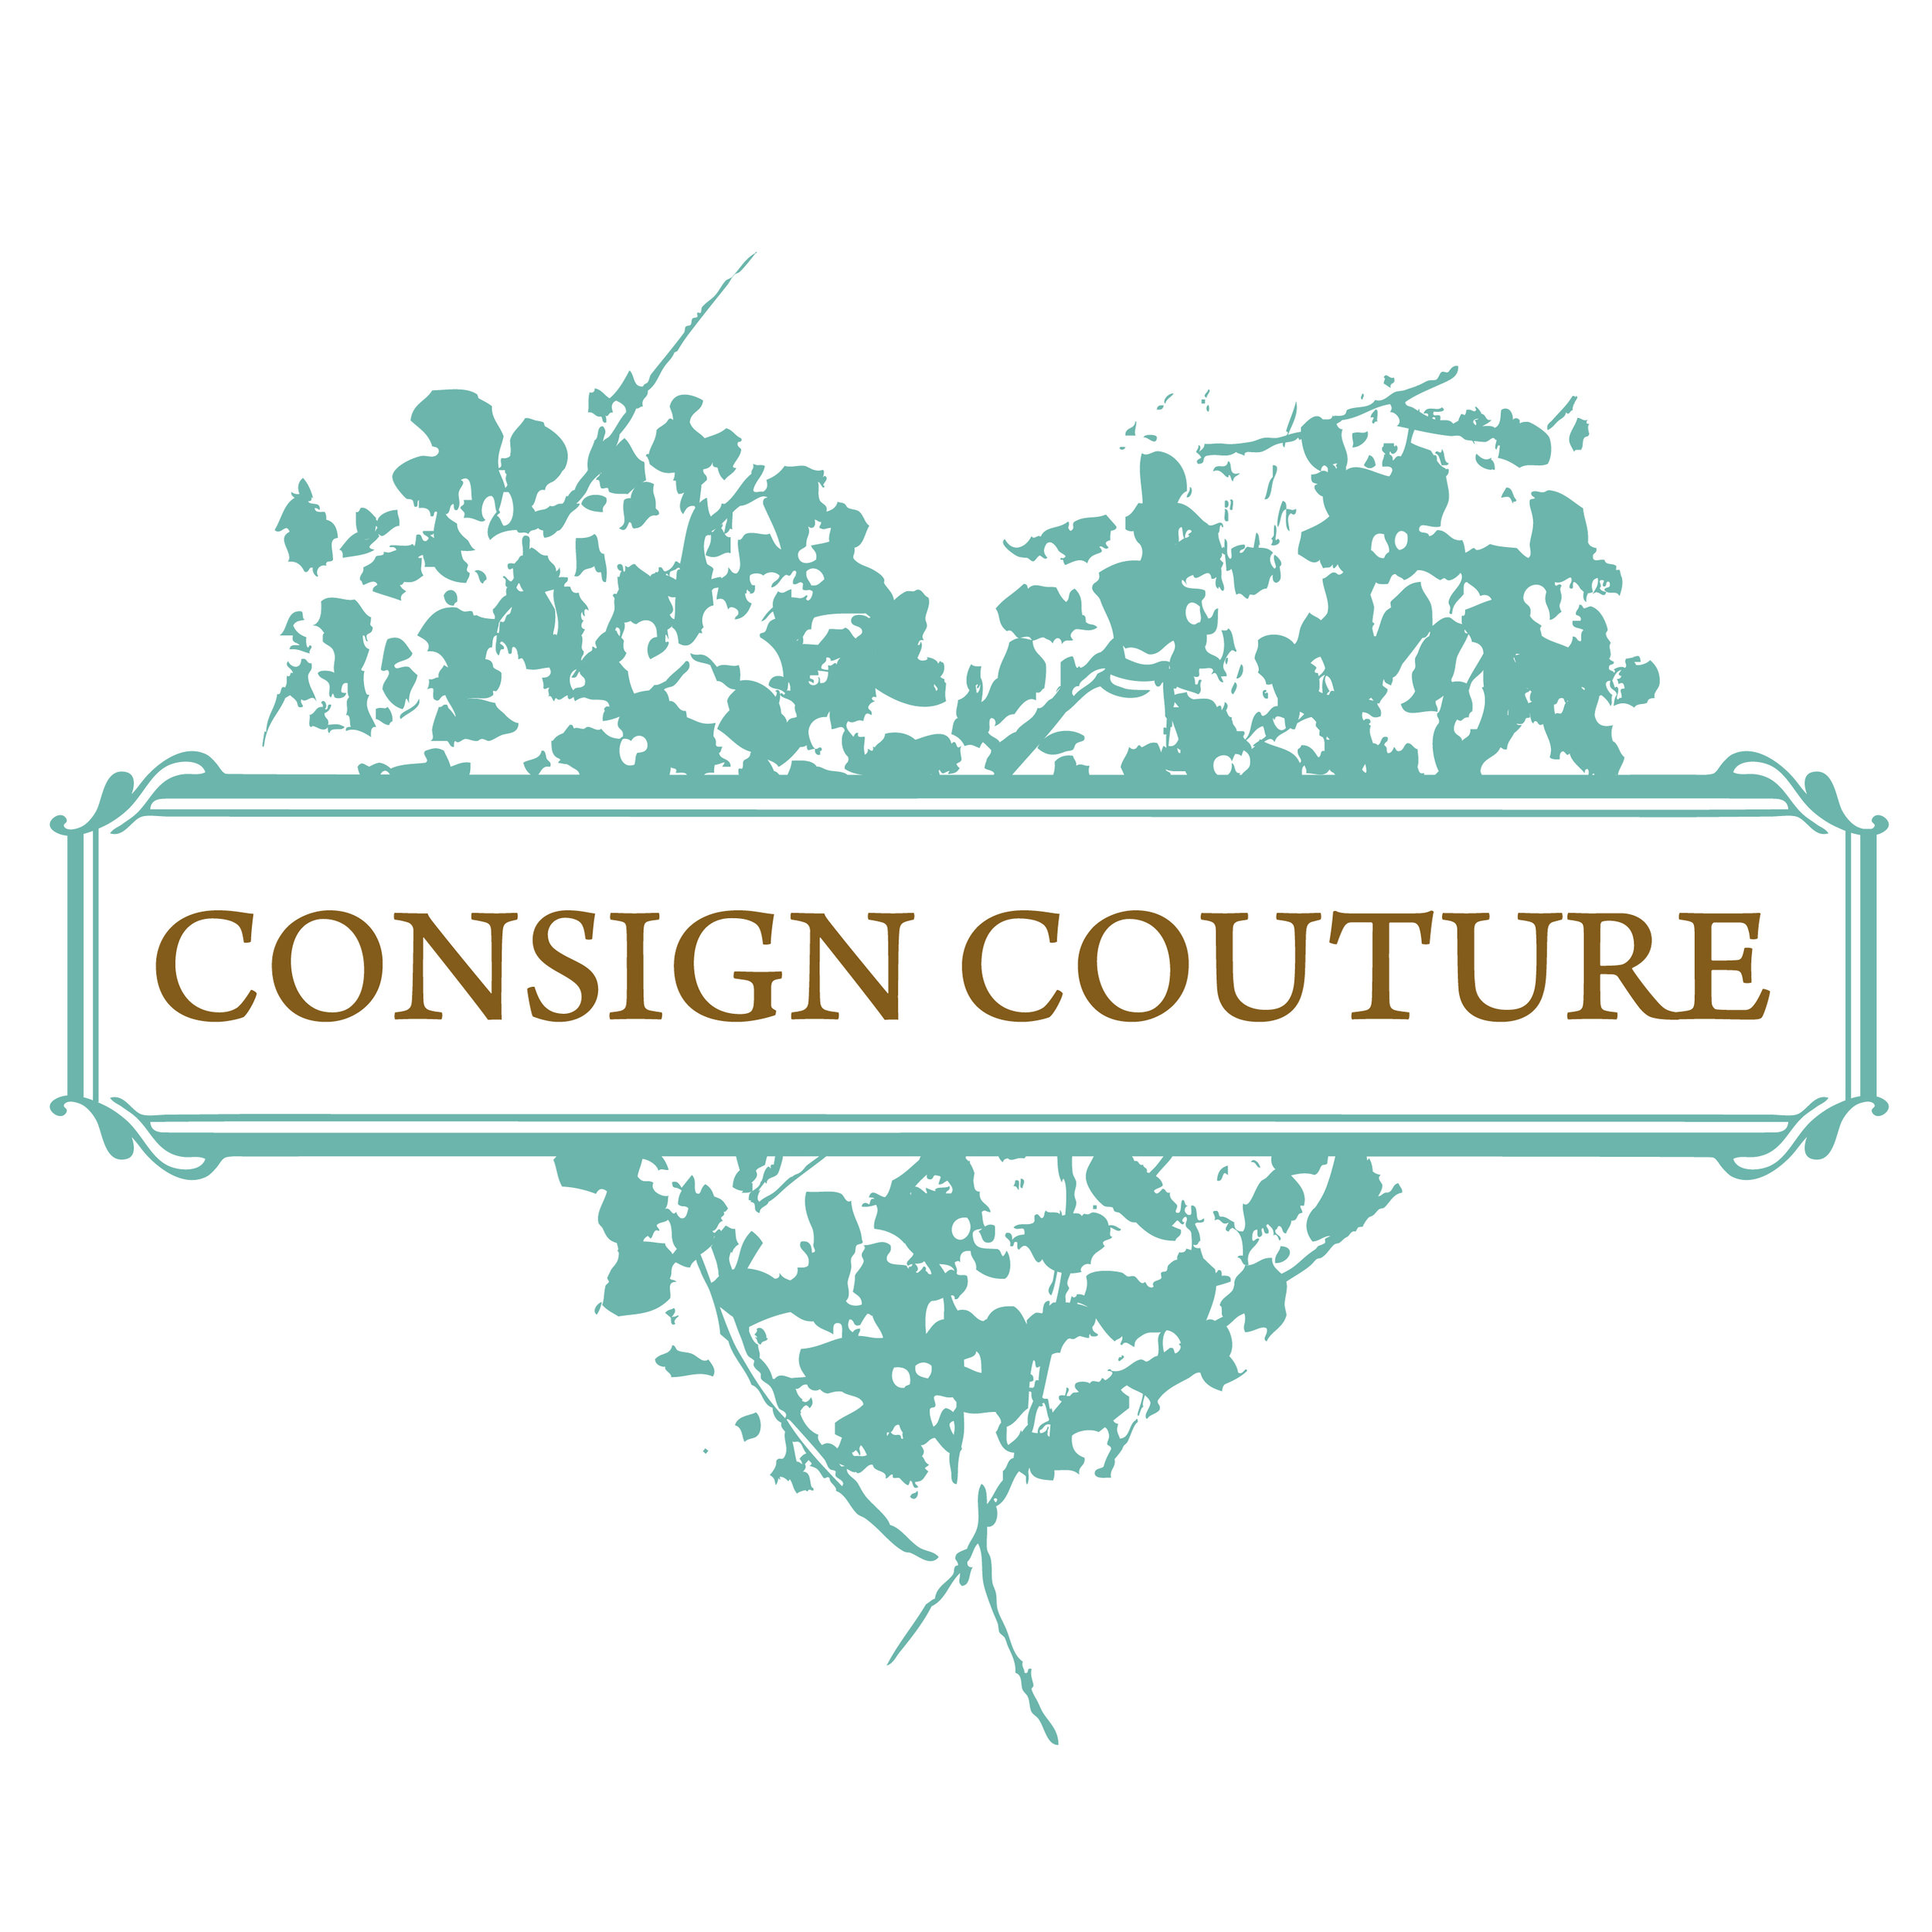 Consign Couture